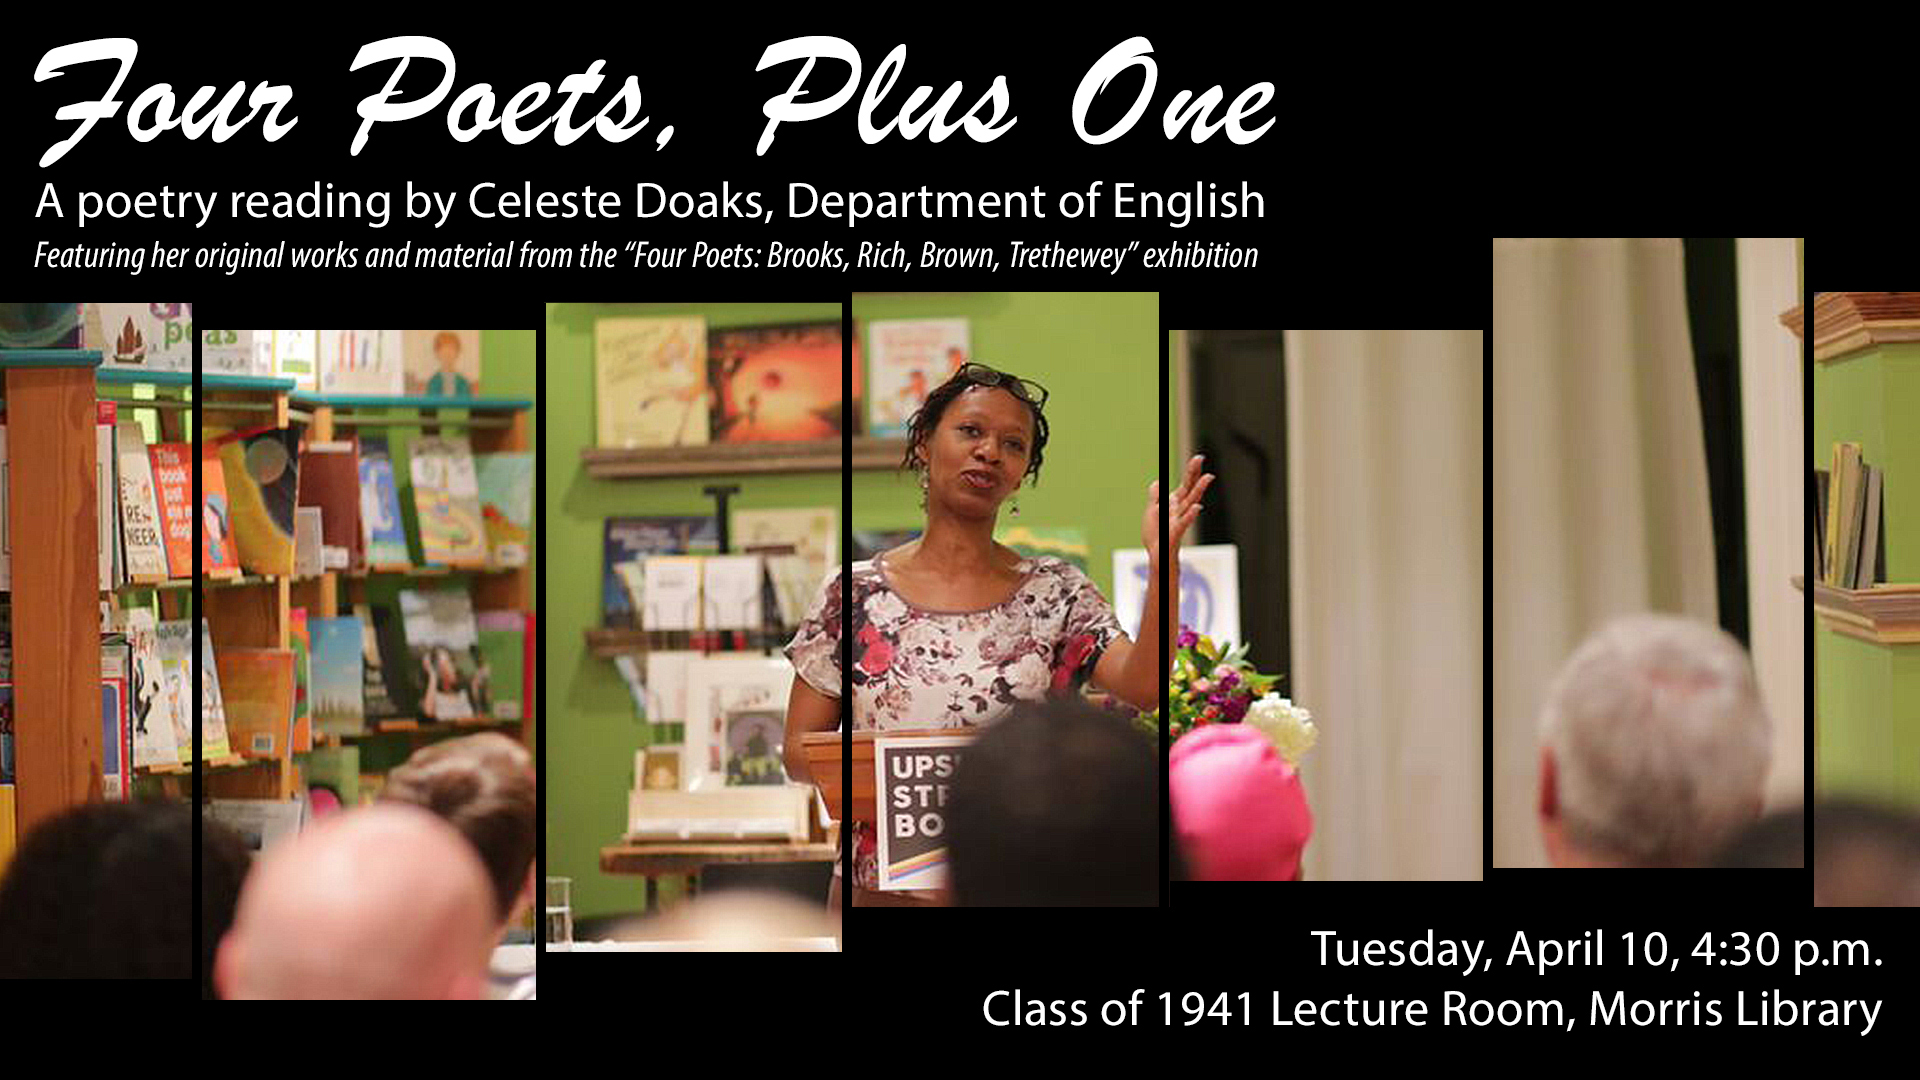 "Four Poets, Plus One, A poetry reading by Celeste Doaks, Department of English, featuring her original works and material from the ""Four Poets"" exhibition, April 10, 4:30p.m., Class of 1941 Lecture Room, Morris Library"